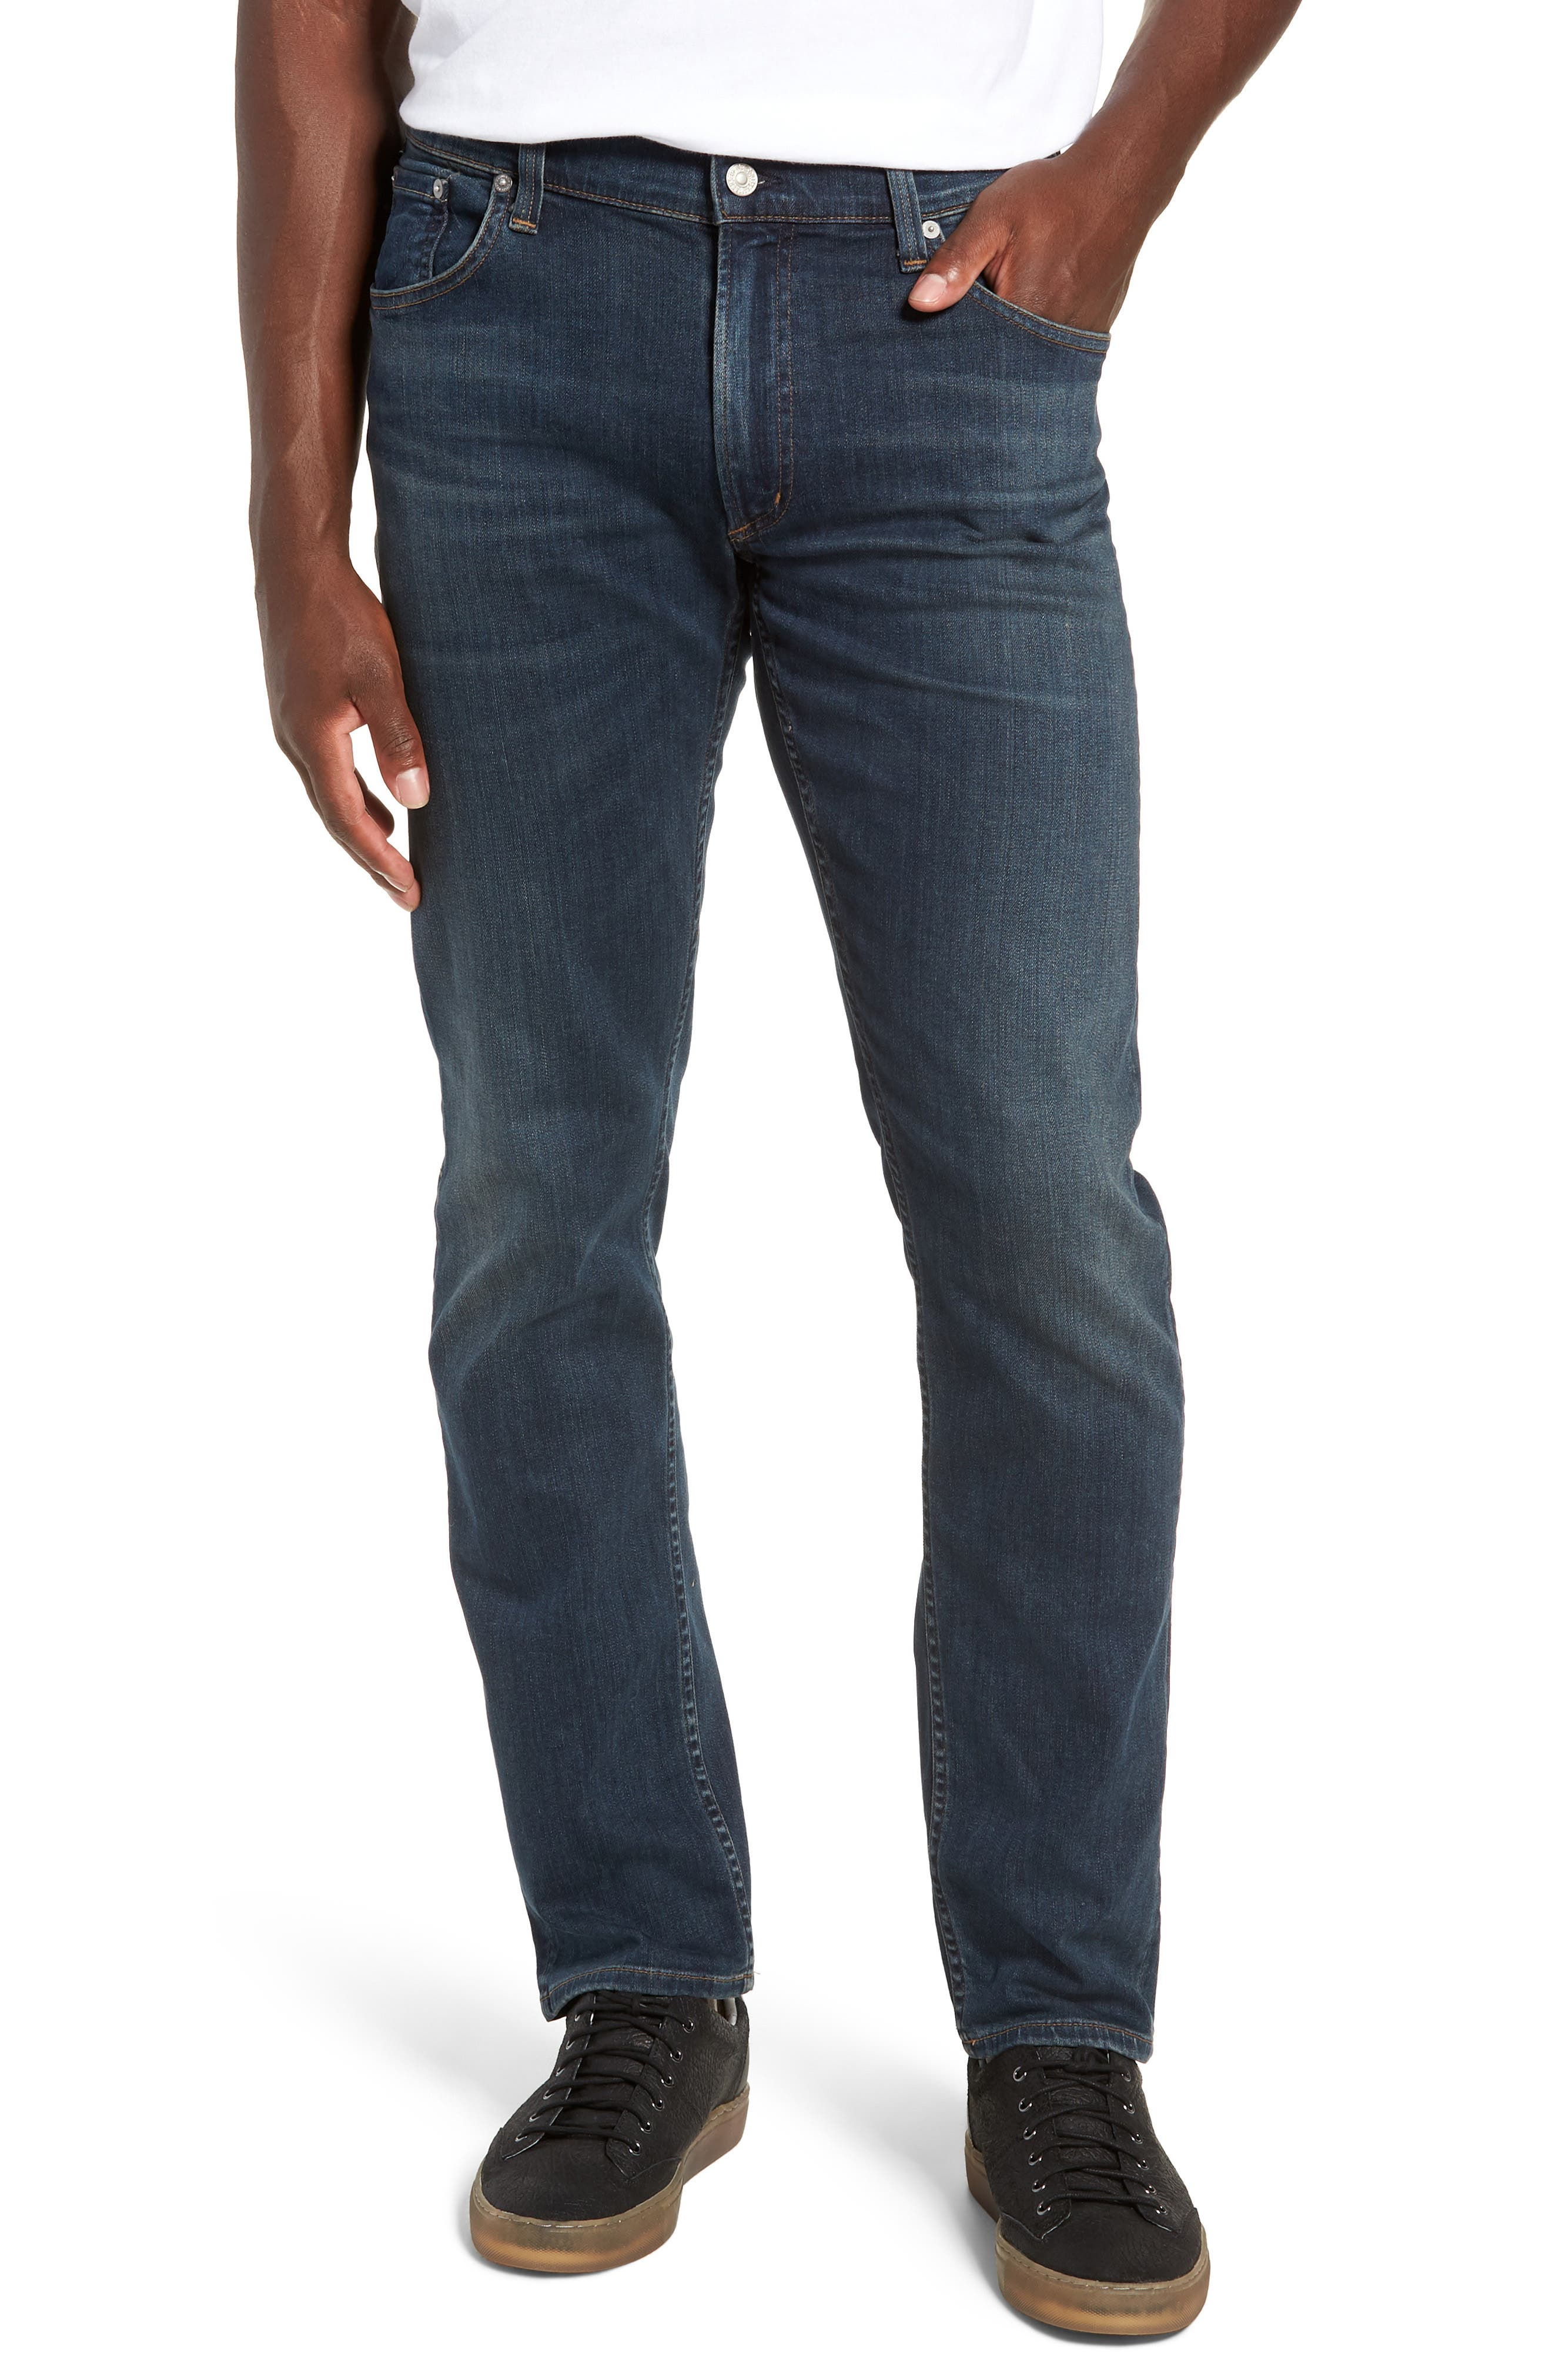 PERFORM - Bowery Slim Fit Jeans,                             Main thumbnail 1, color,                             424